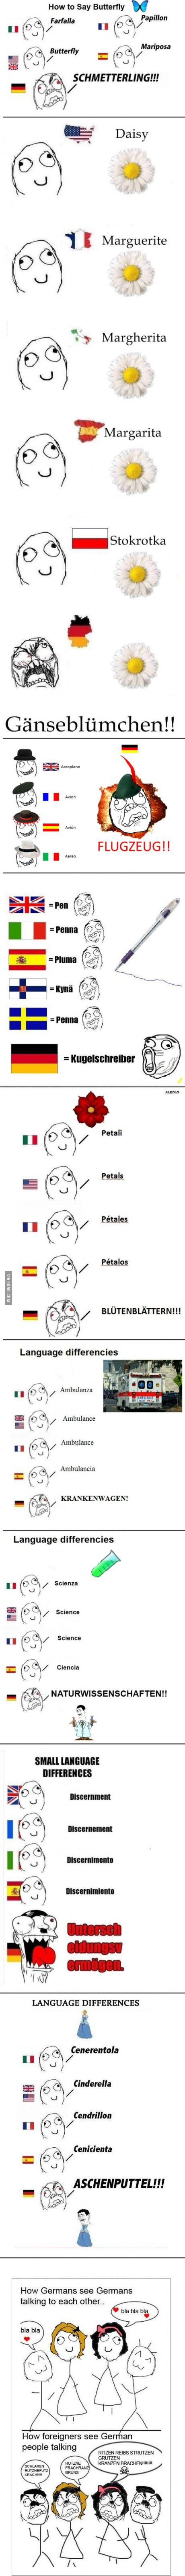 Ah, the beautiful German language!